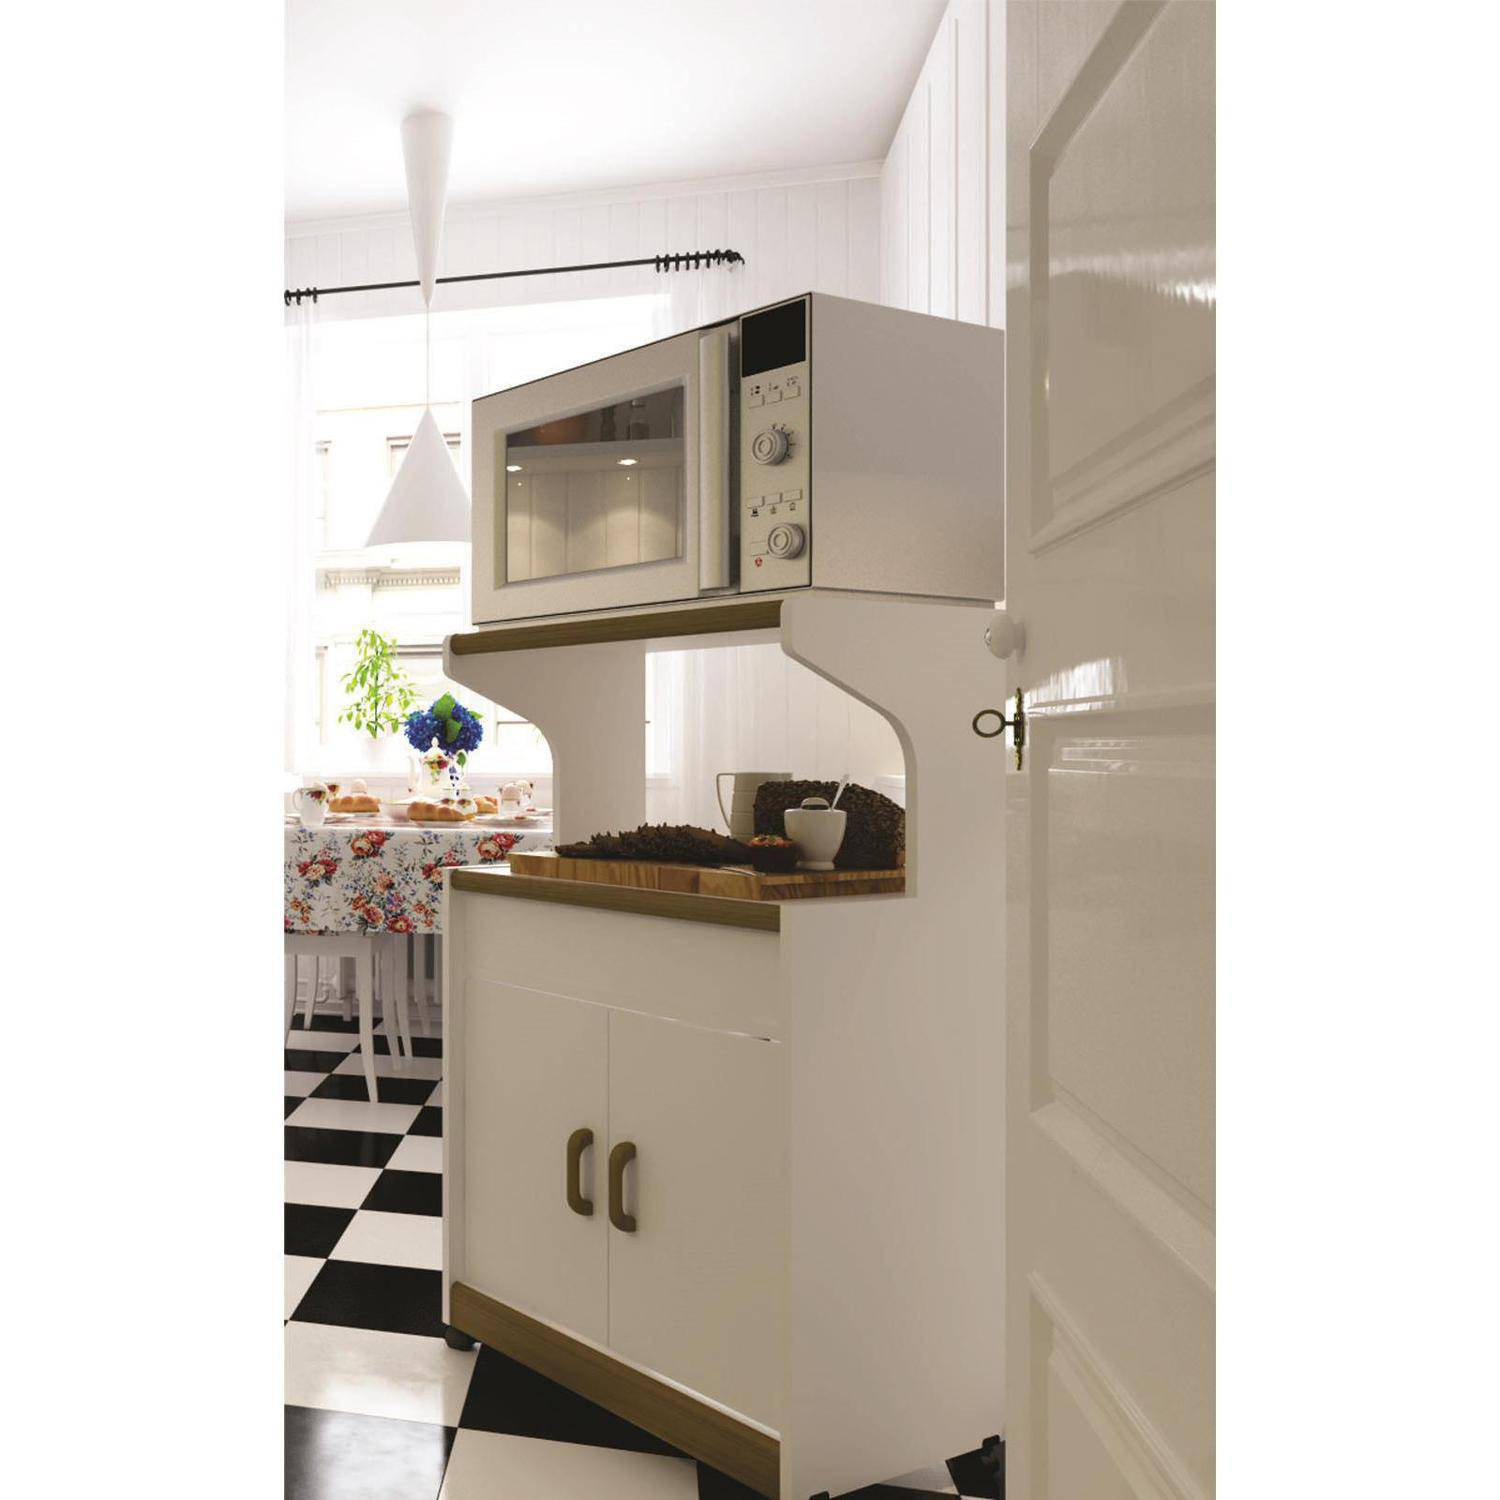 Superb Microwave Cabinet With Shelves, White